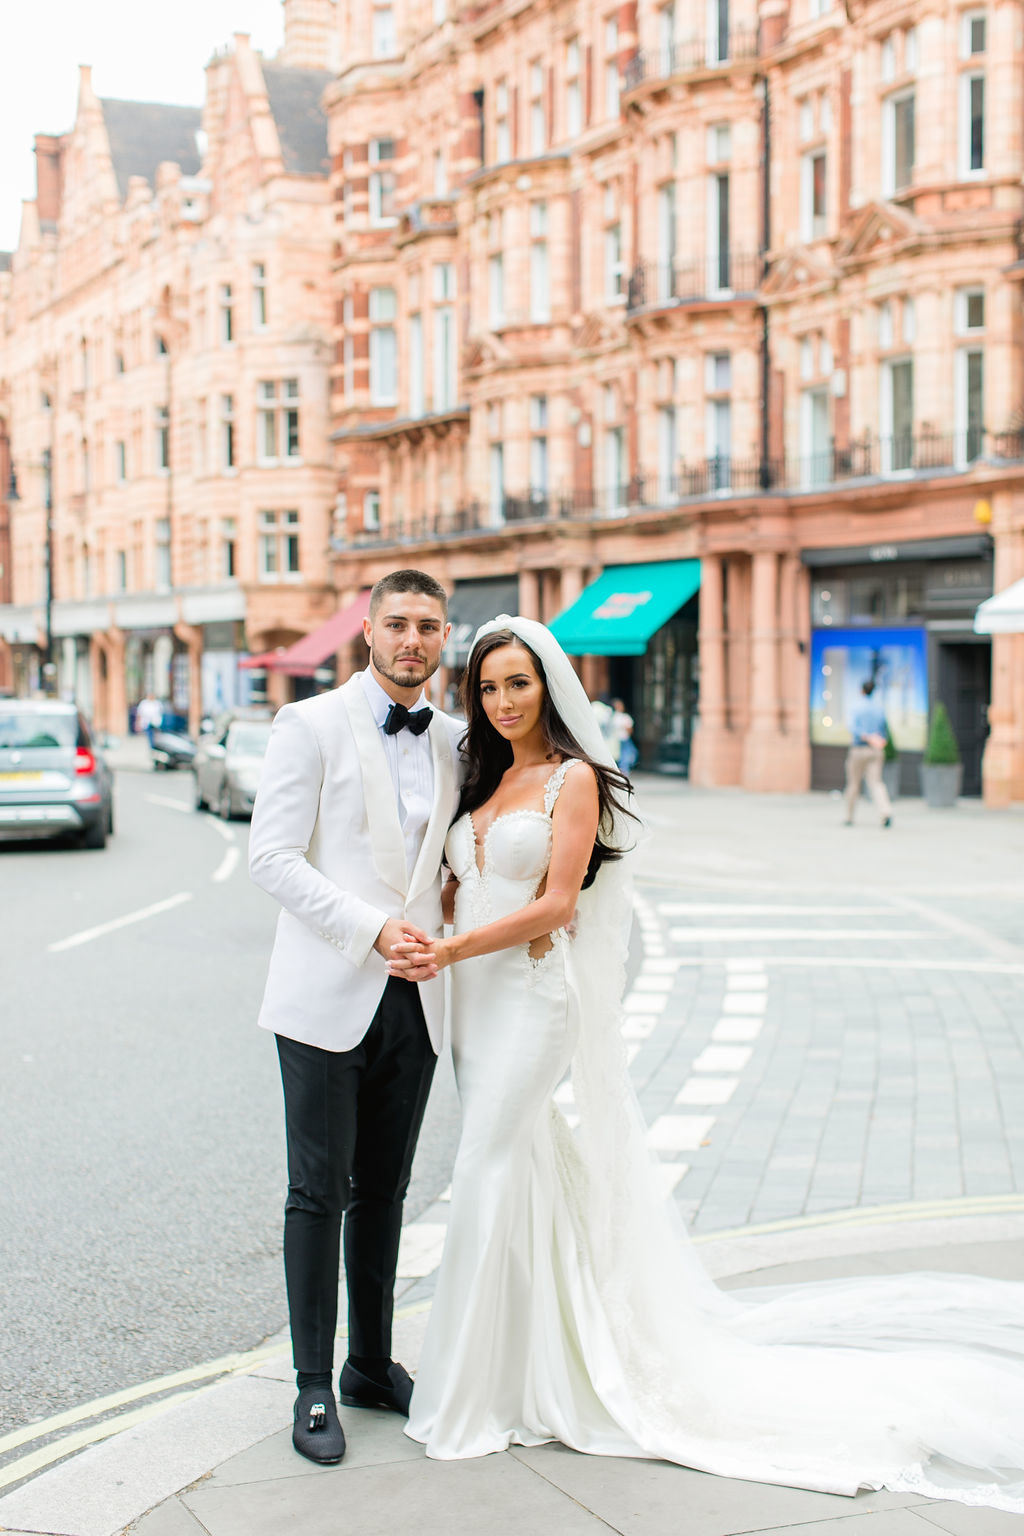 josh-kelly-remy-smith-london-wedding-photographer-roberta-facchini-photography-460